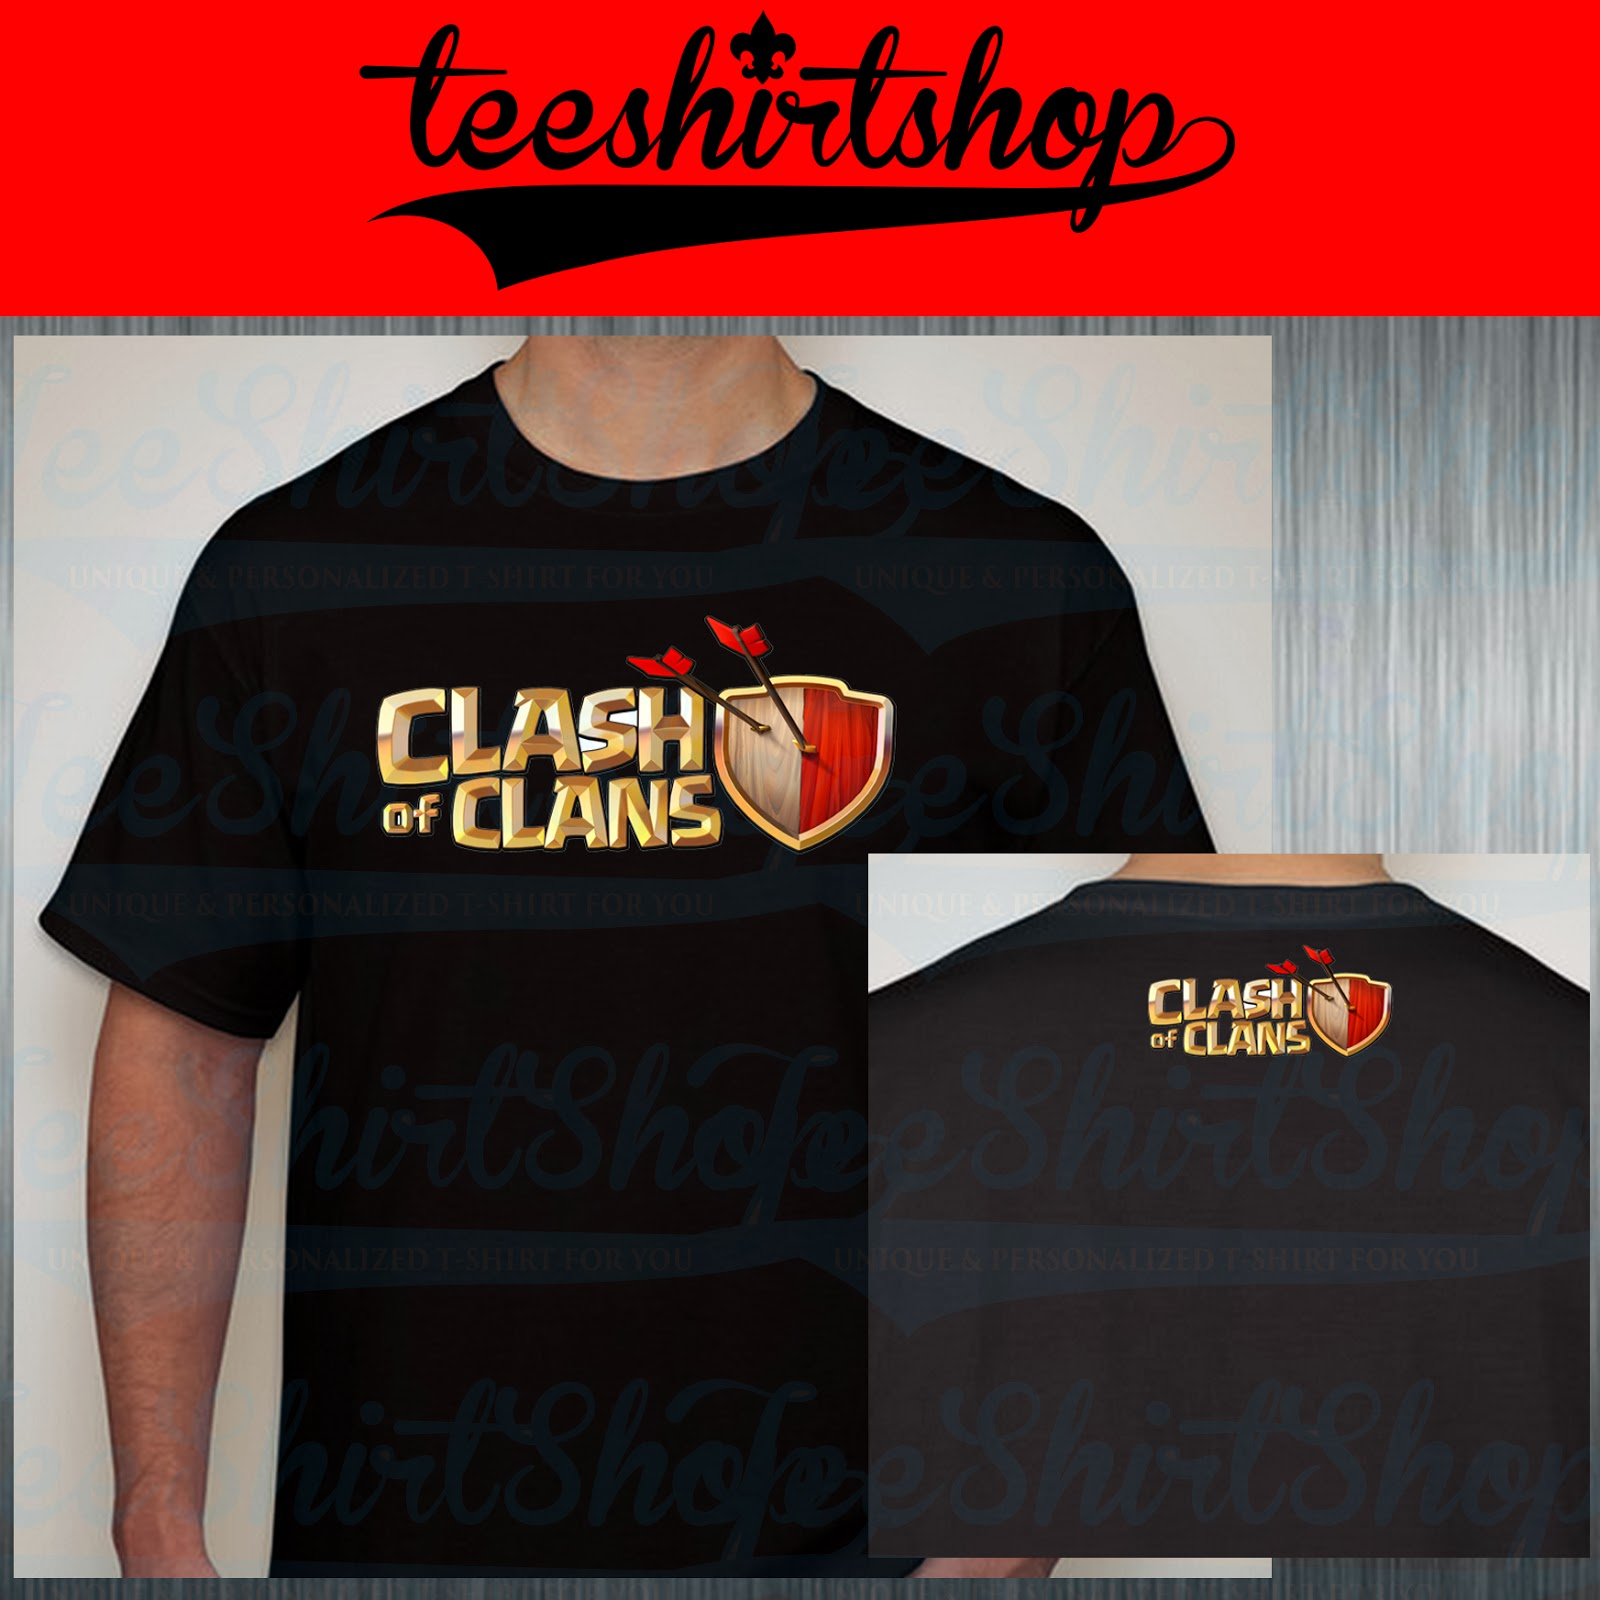 Tee Shirt Shop Clash Of Clans Tshirt